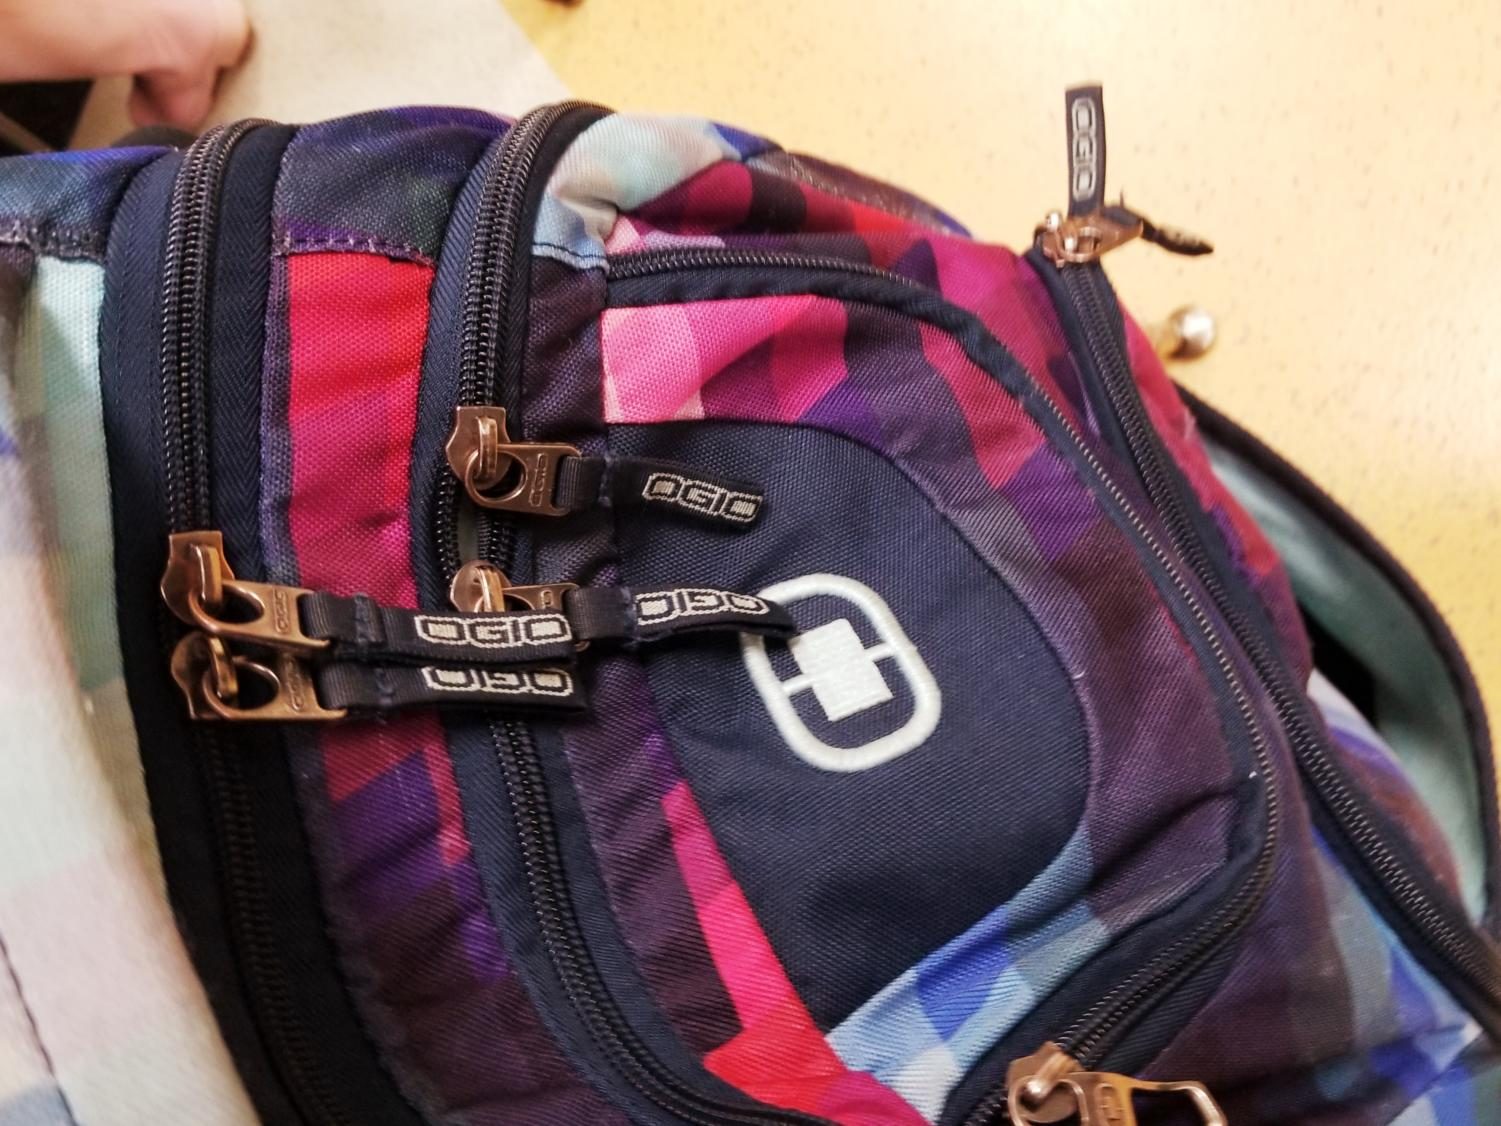 A normal backpack in its school environment.